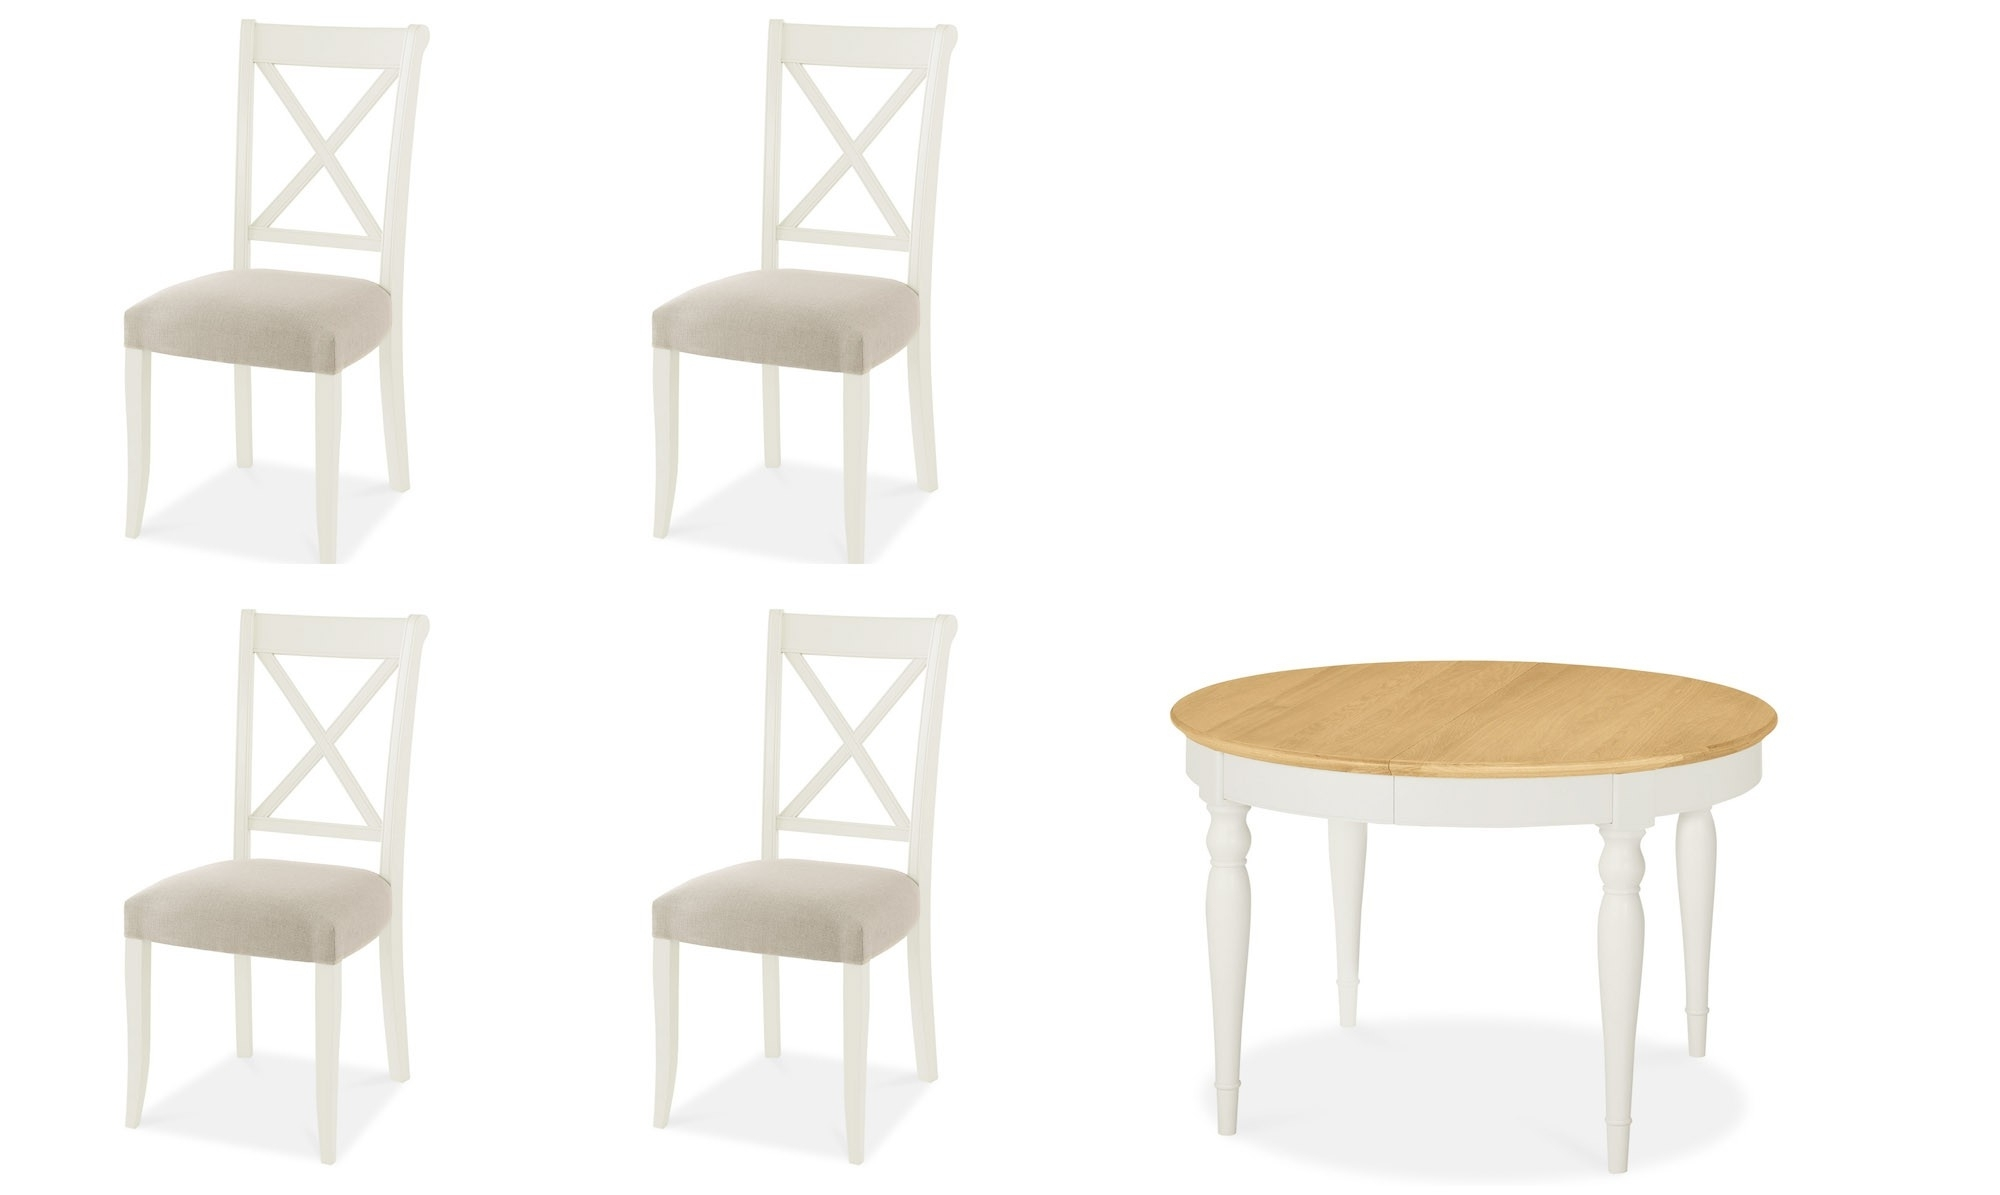 Georgie – Round Extending Dining Table And Chairs In Cream – Oak Top Pertaining To Famous Extendable Dining Tables And 4 Chairs (View 13 of 25)